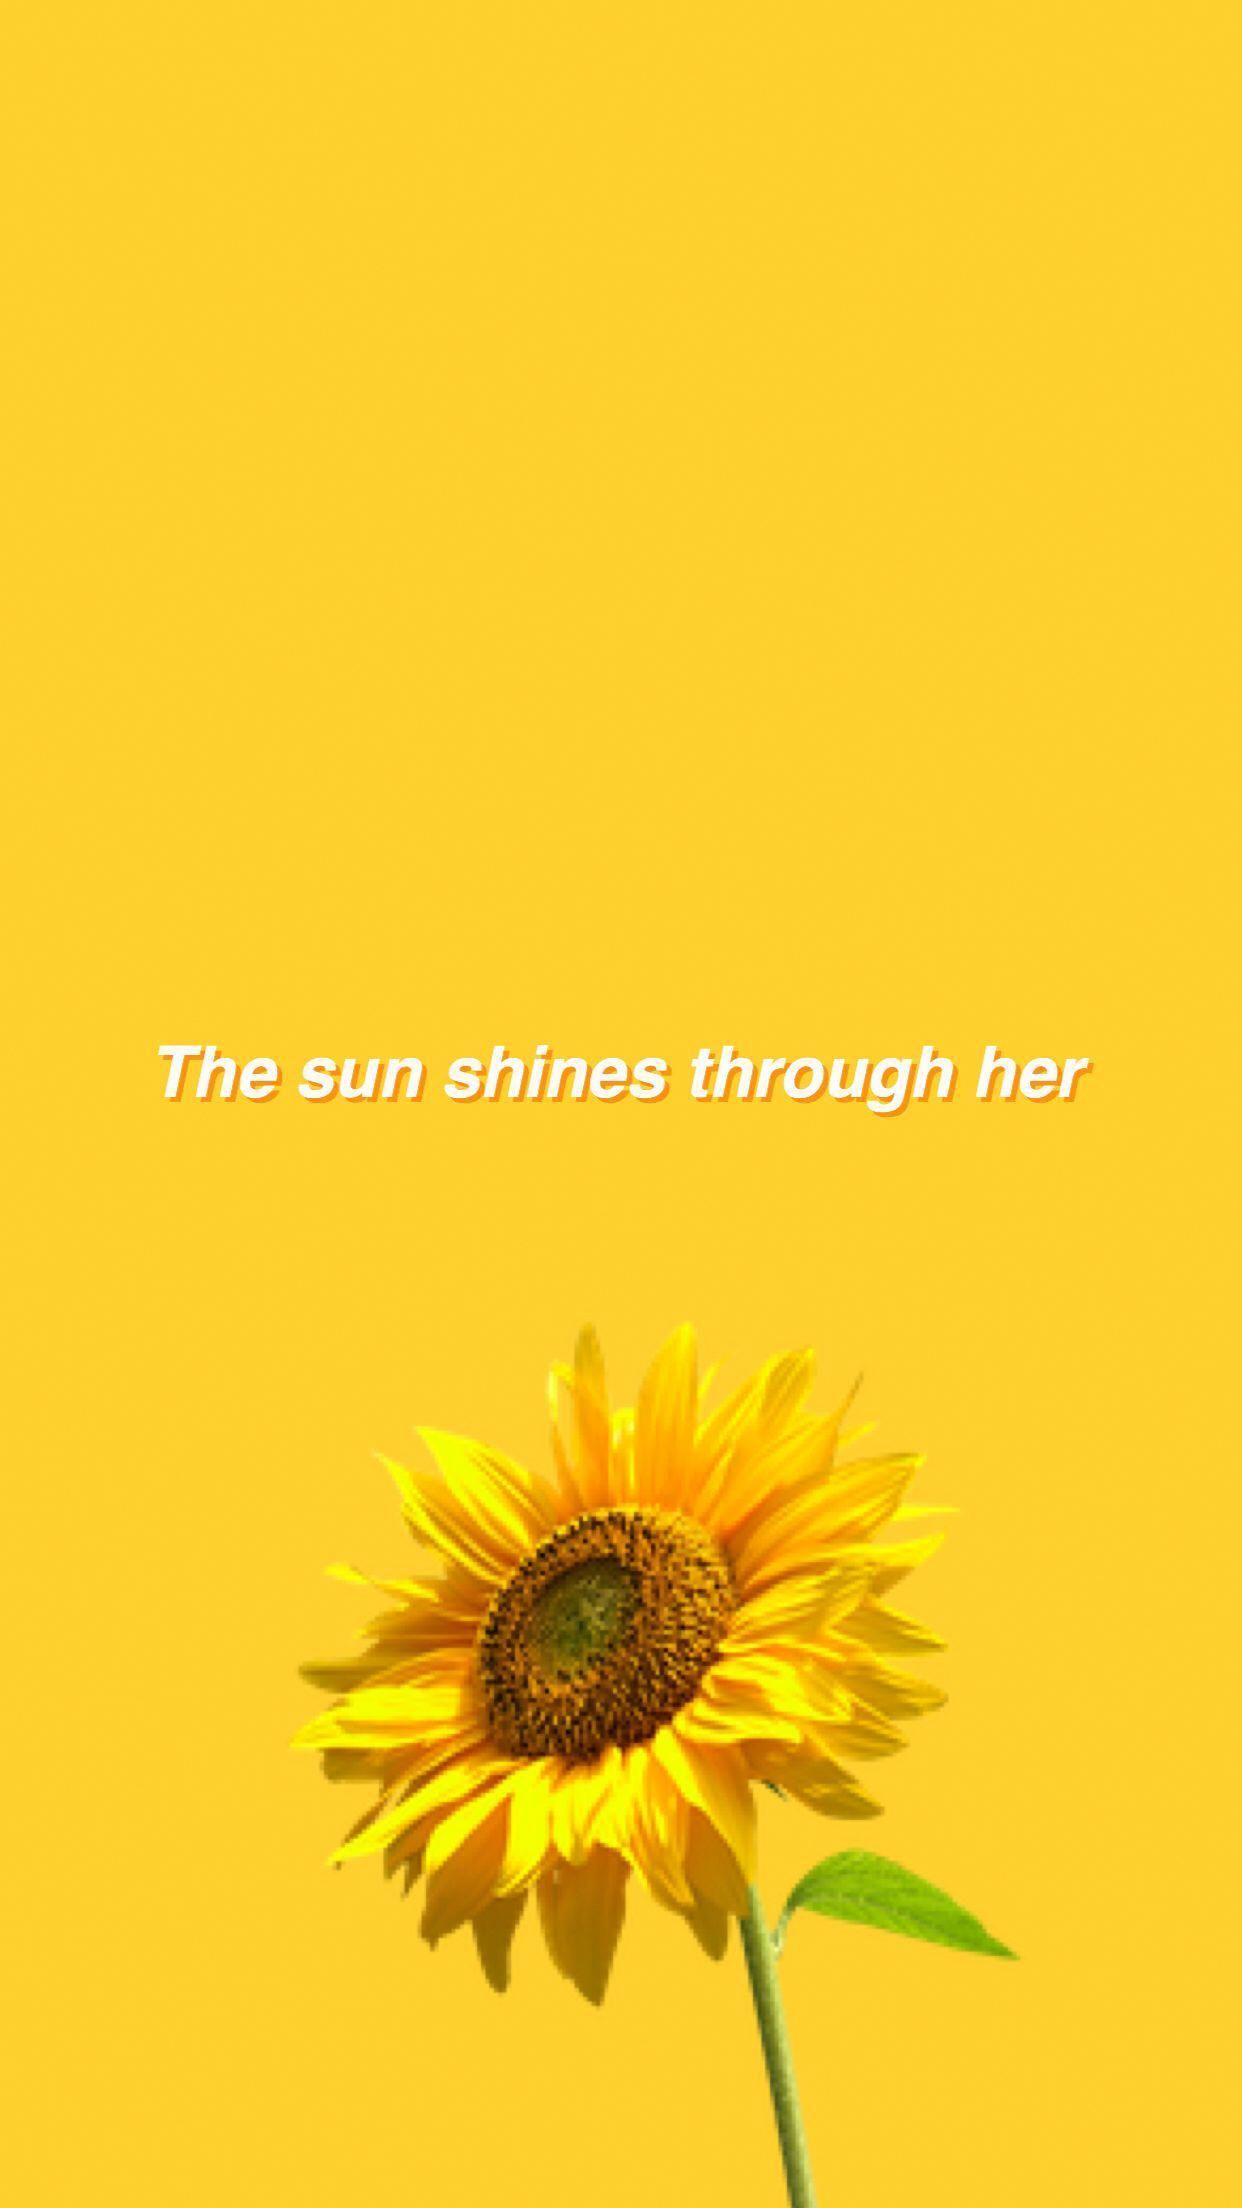 Sunflower Yellow Tumblr Aesthetic Wallpapers